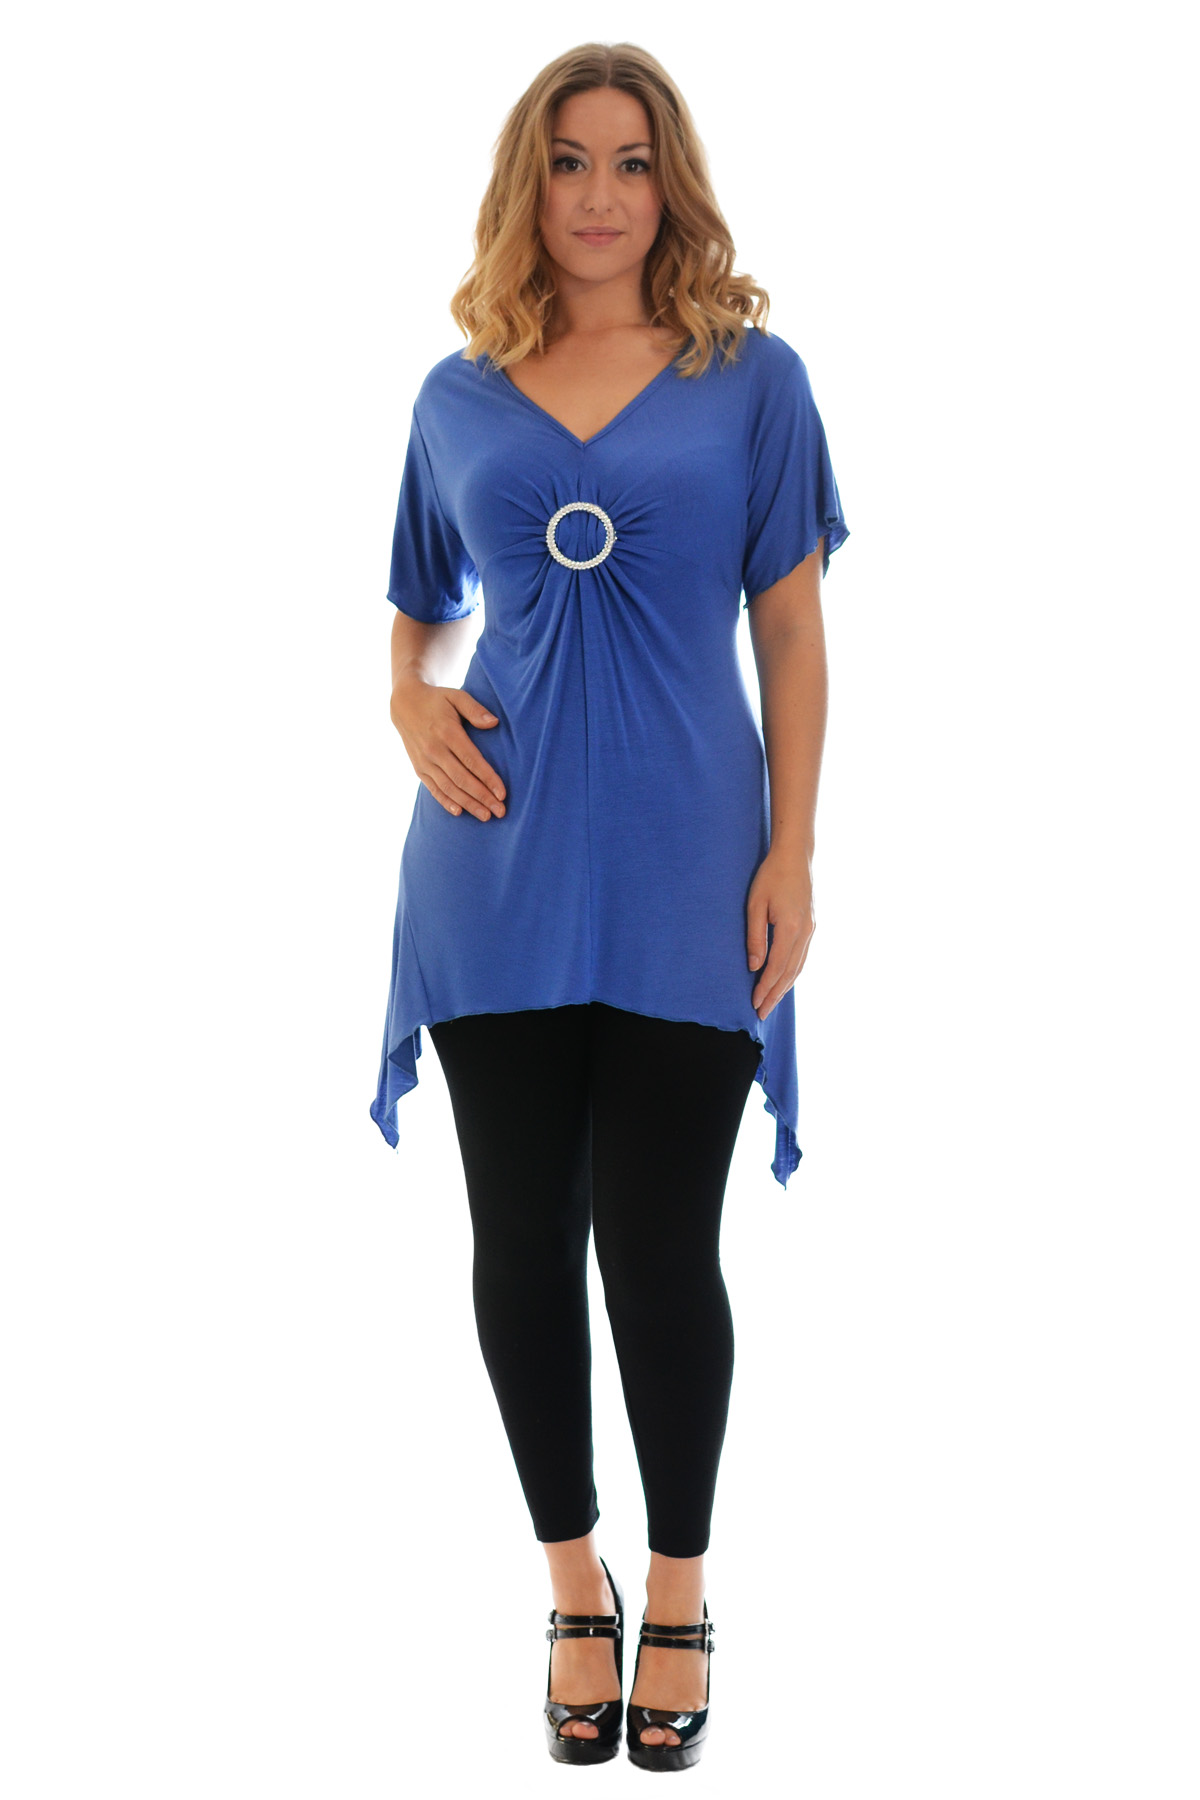 New-Womens-Plus-Size-Top-Ladies-T-Shirt-Buckle-Stud-A-Line-Asymmetric-Nouvelle thumbnail 73